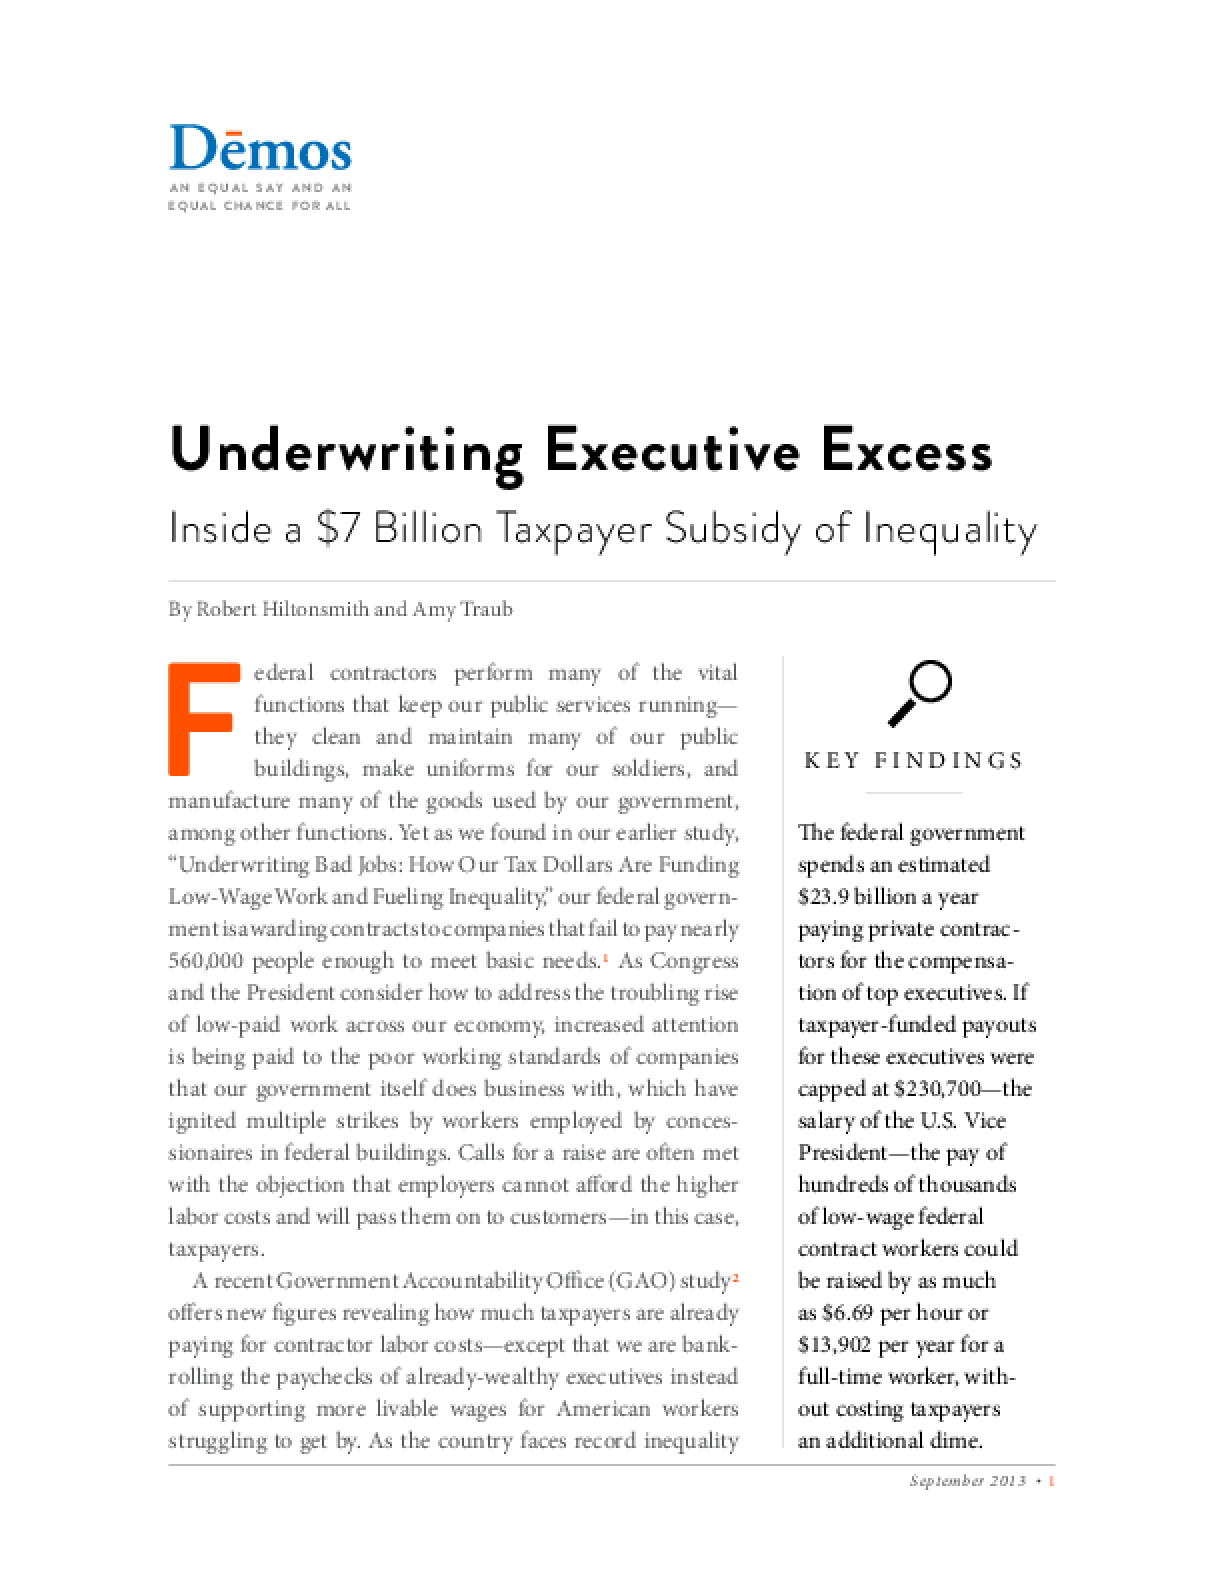 Underwriting Executive Excess: Inside a $7 Billion Taxpayer Subsidy of Inequality